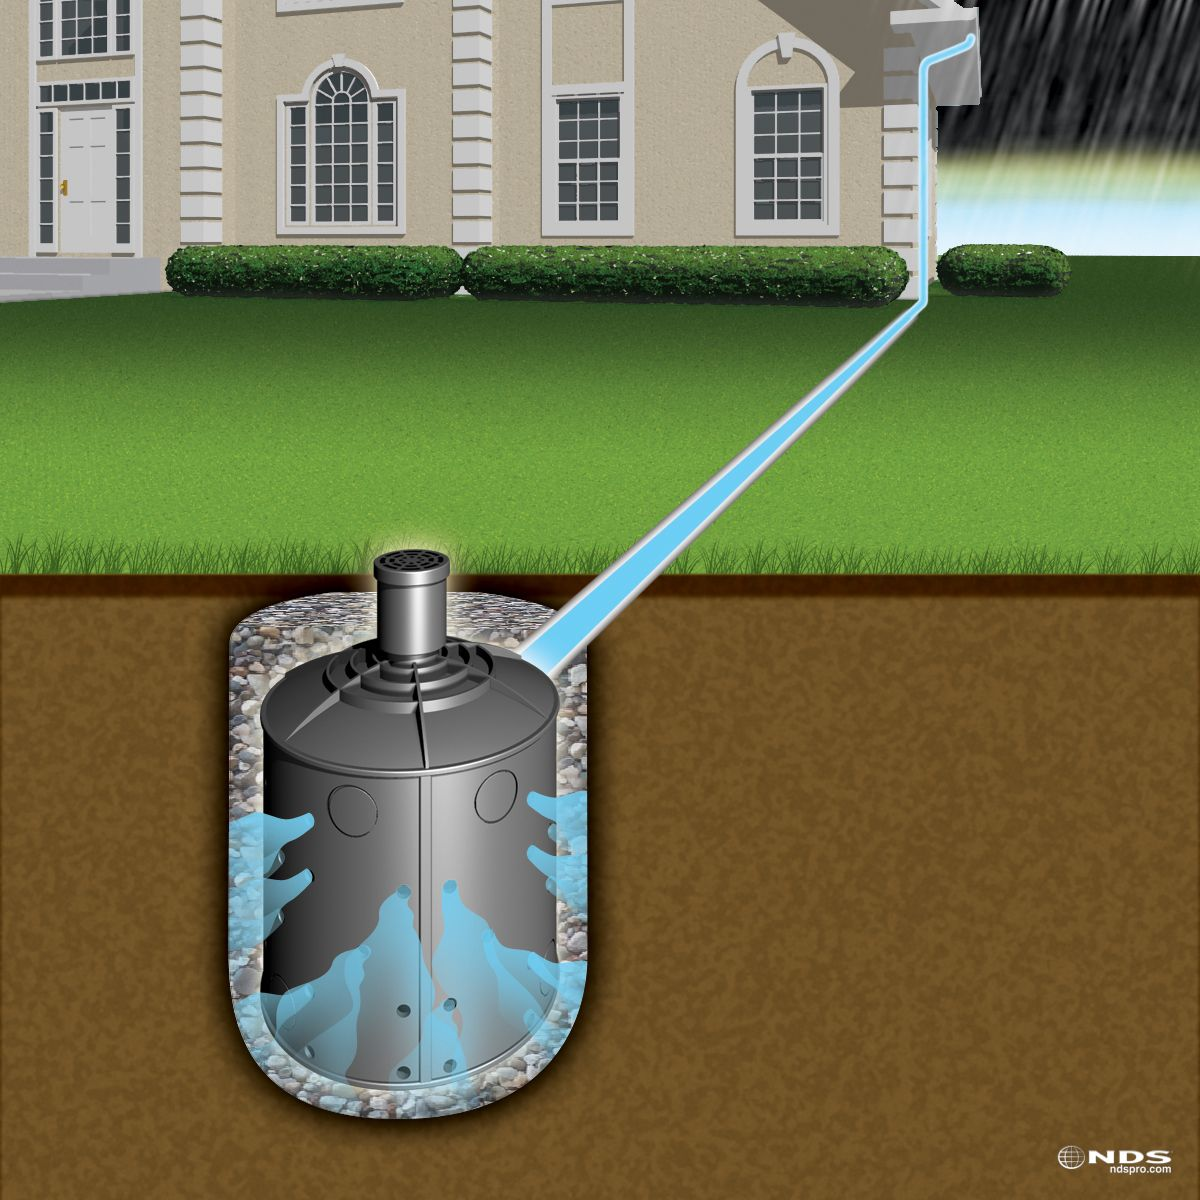 Nds Flo Well Dry Well Backyard Drainage Dry Well Drainage Solutions